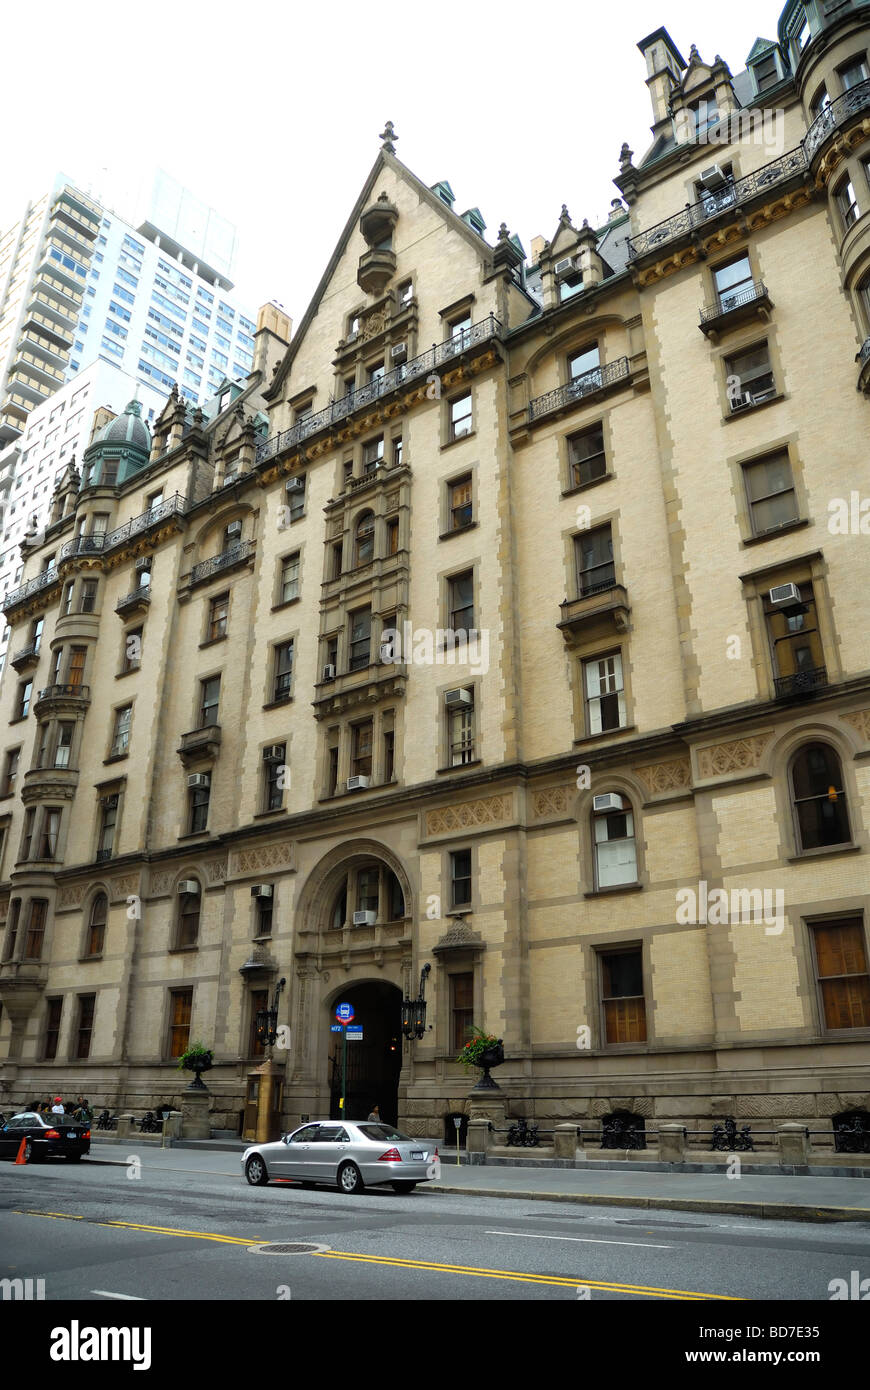 The Dakota Building 72nd Street View New York City USA Stock